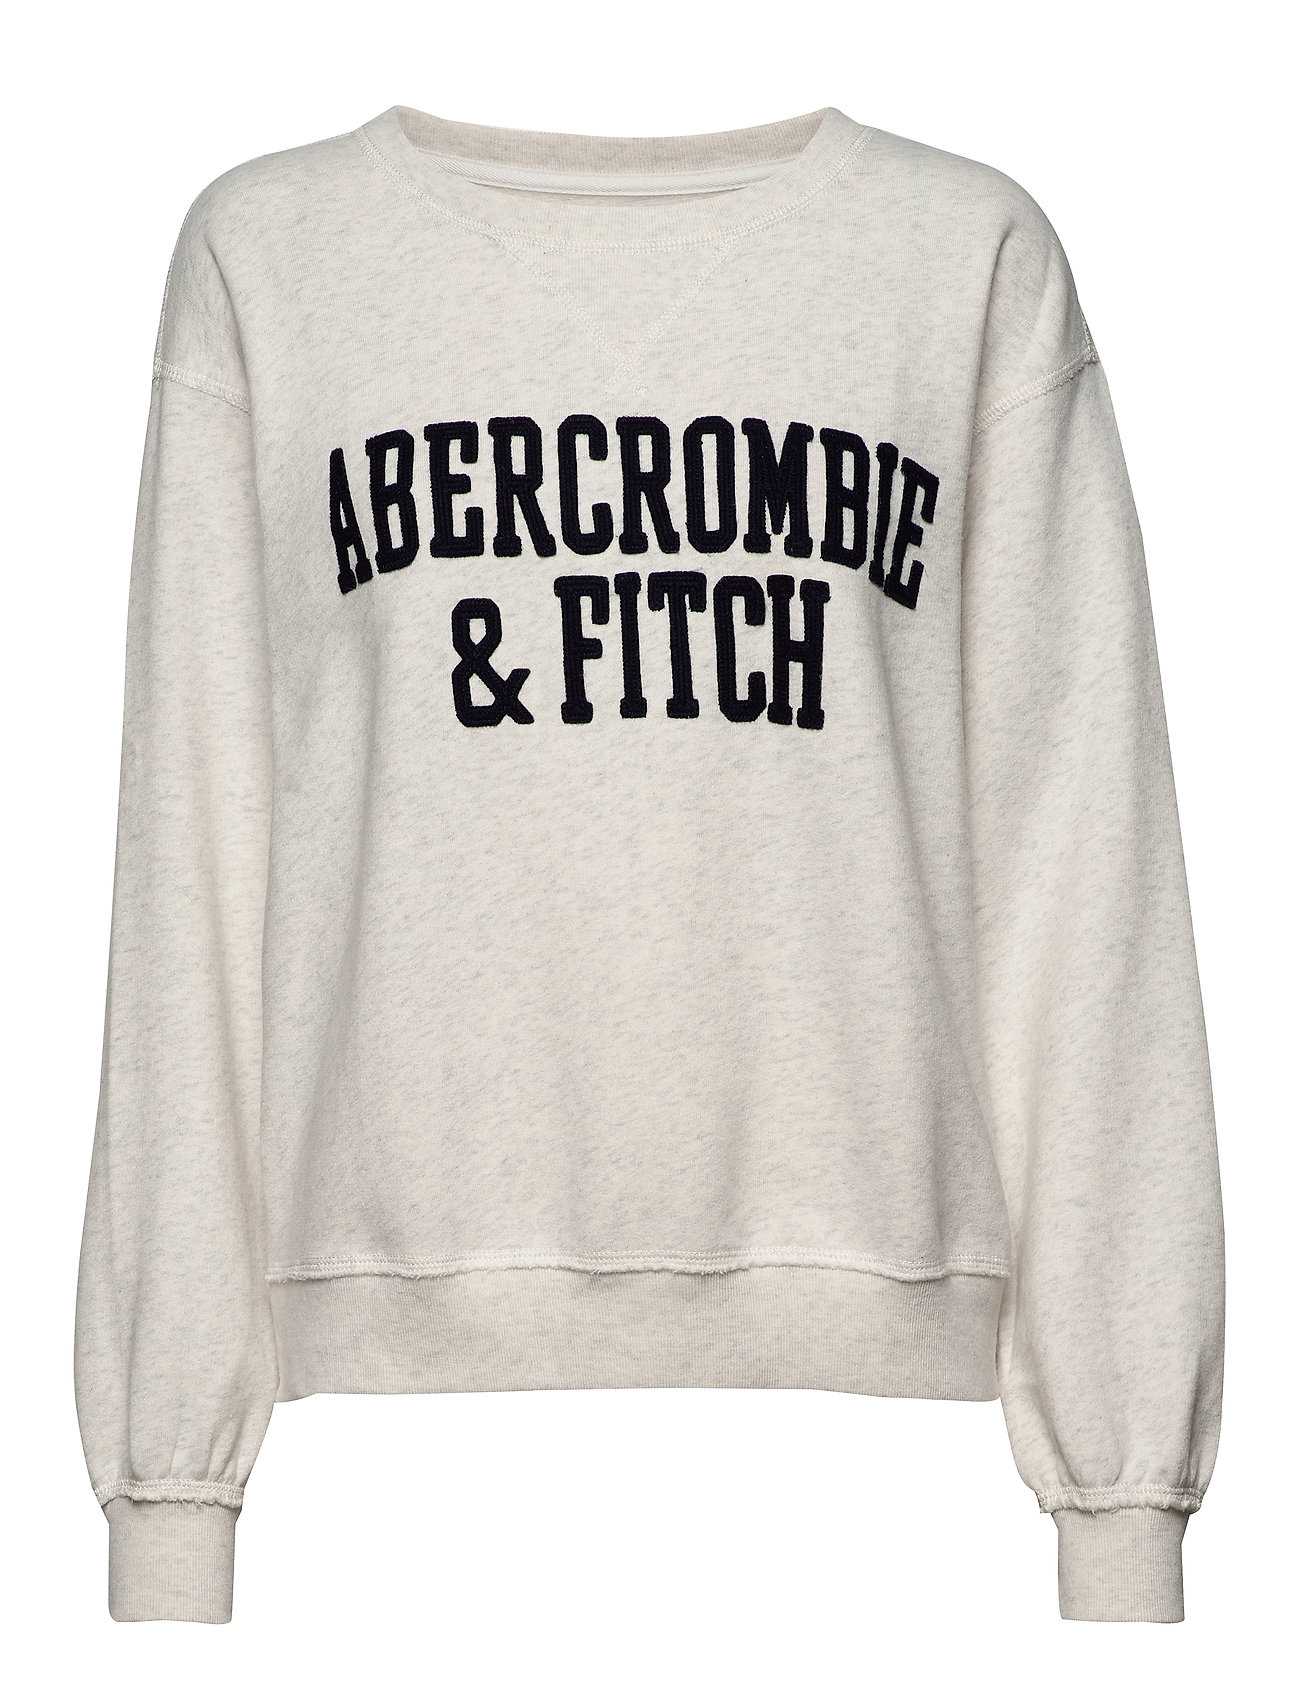 Abercrombie & Fitch Heritage Relaxed Crew - LIGHT GREY SD/TEXTURE